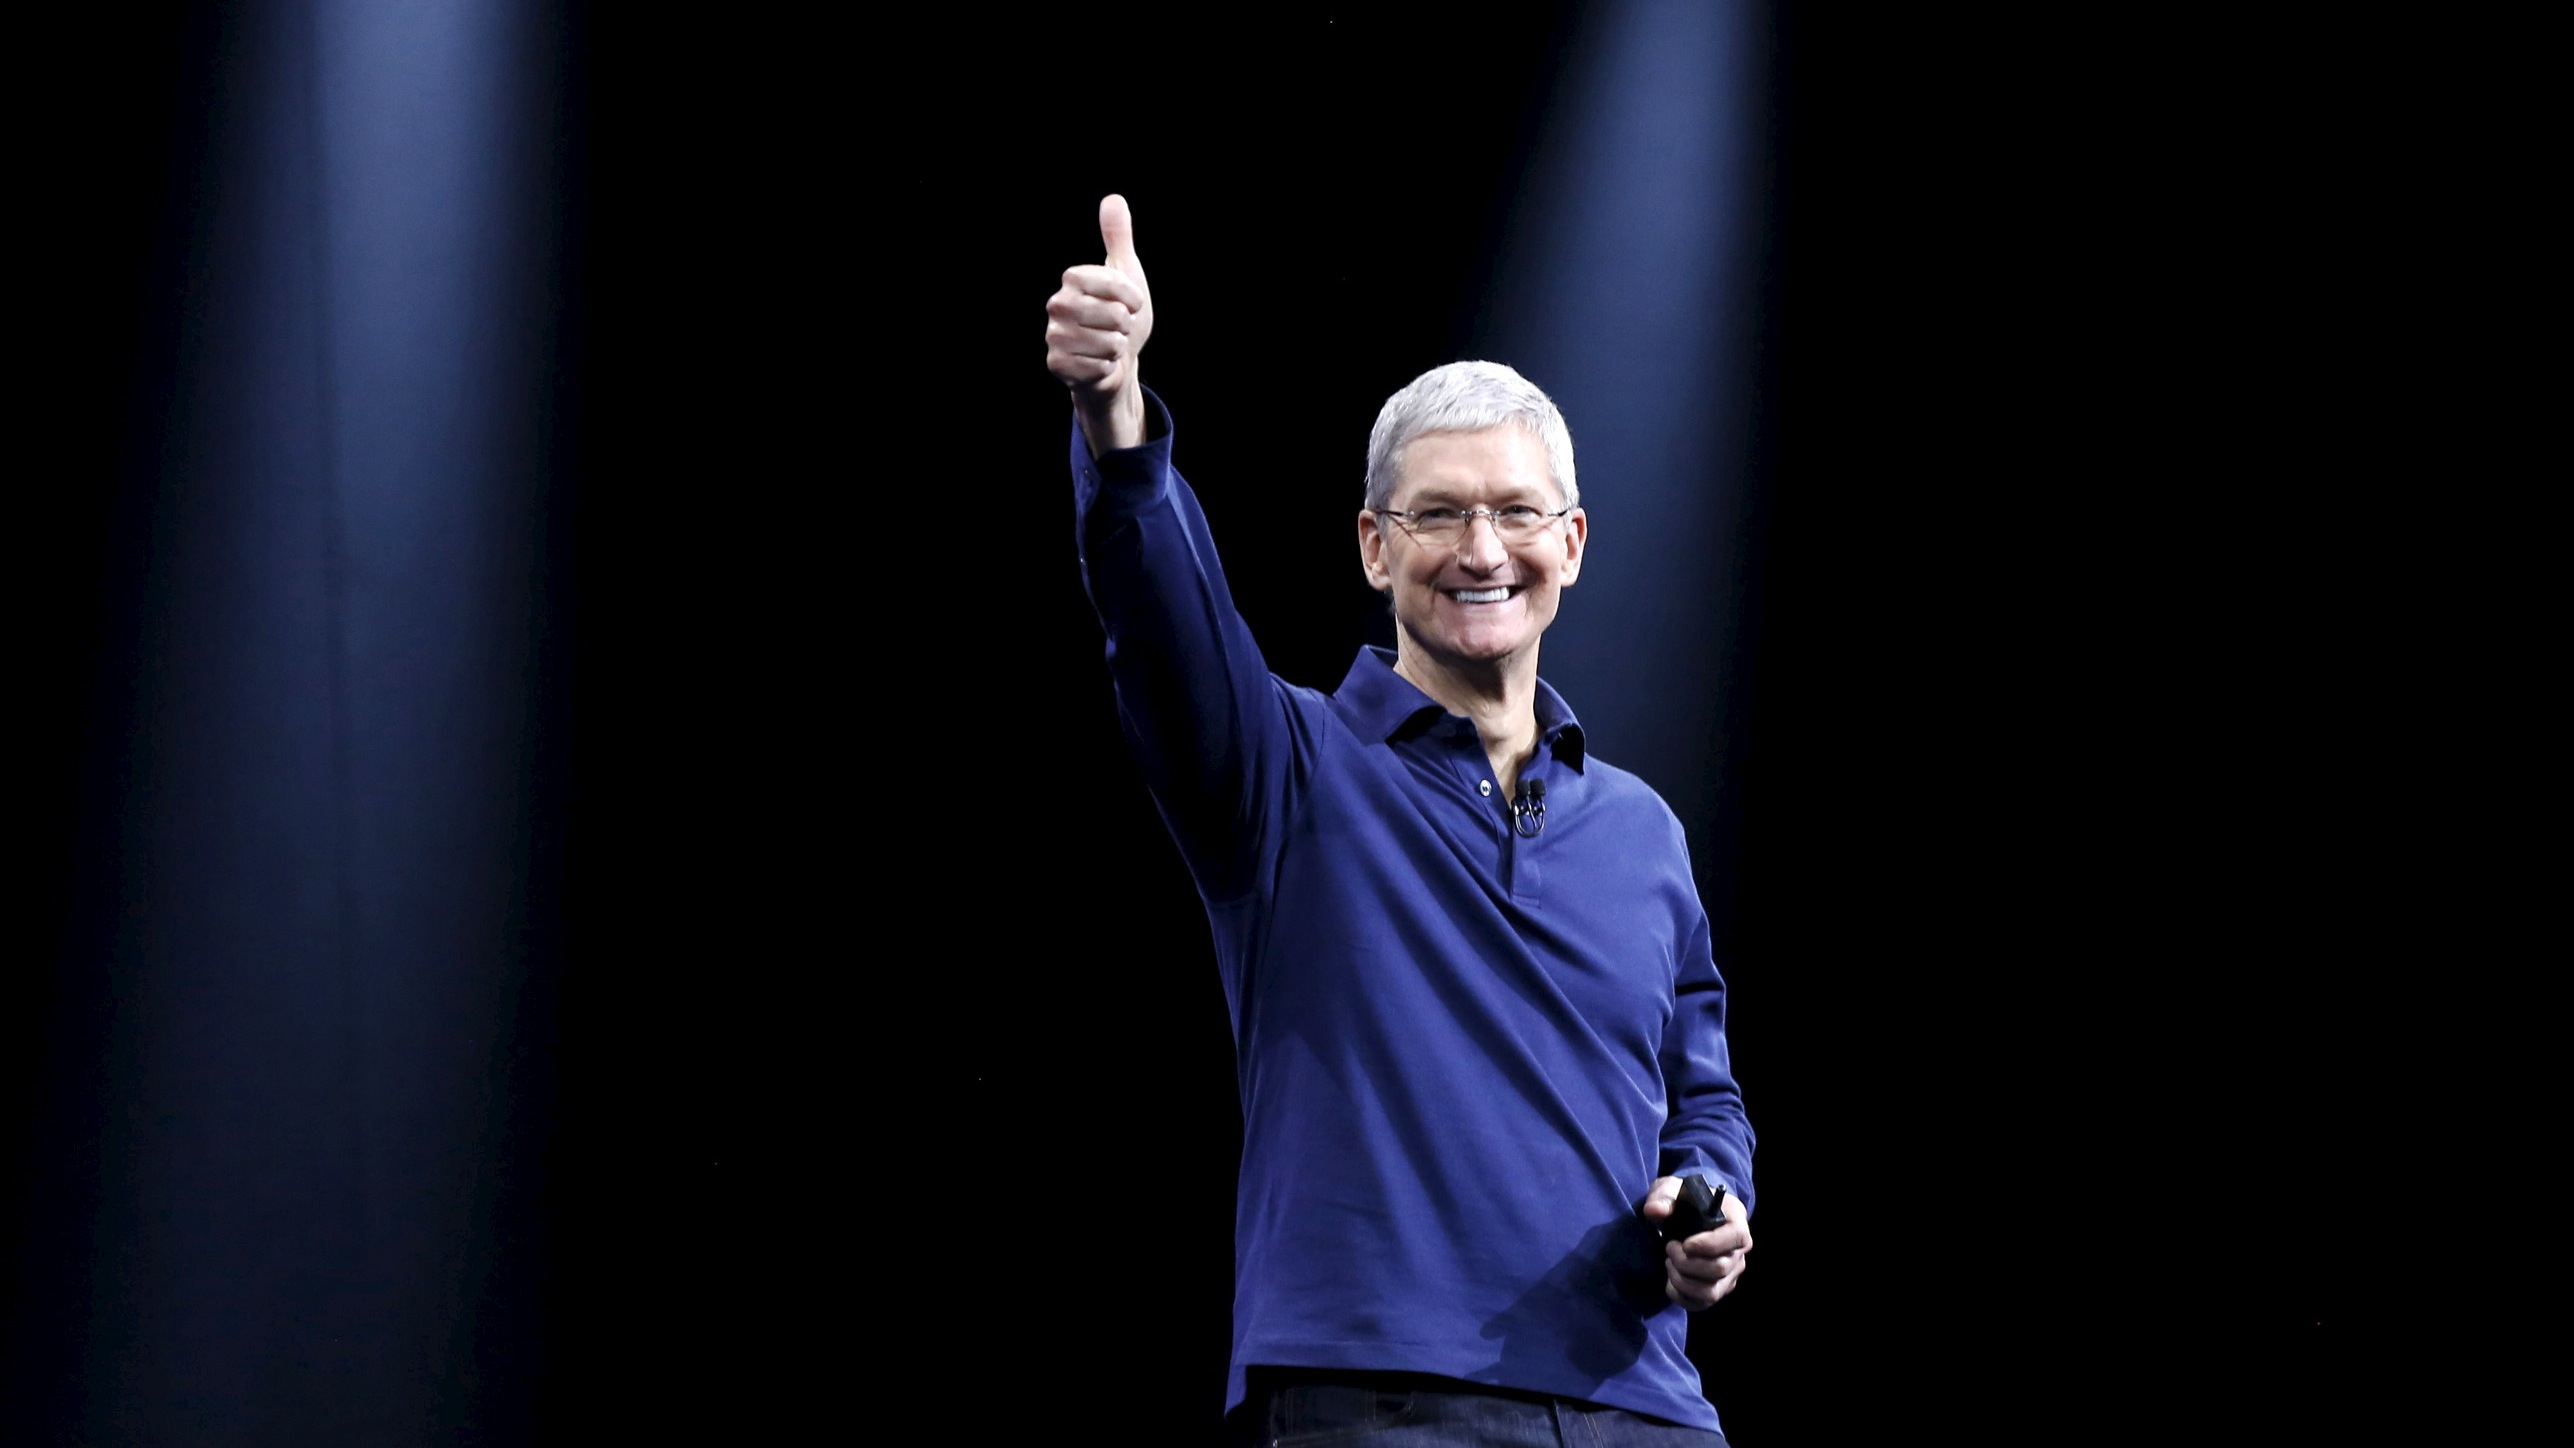 Apple CEO Tim Cook delivers his keynote address at the Worldwide Developers Conference in San Francisco, California June 8, 2015. REUTERS/Robert Galbraith - RTX1FONL